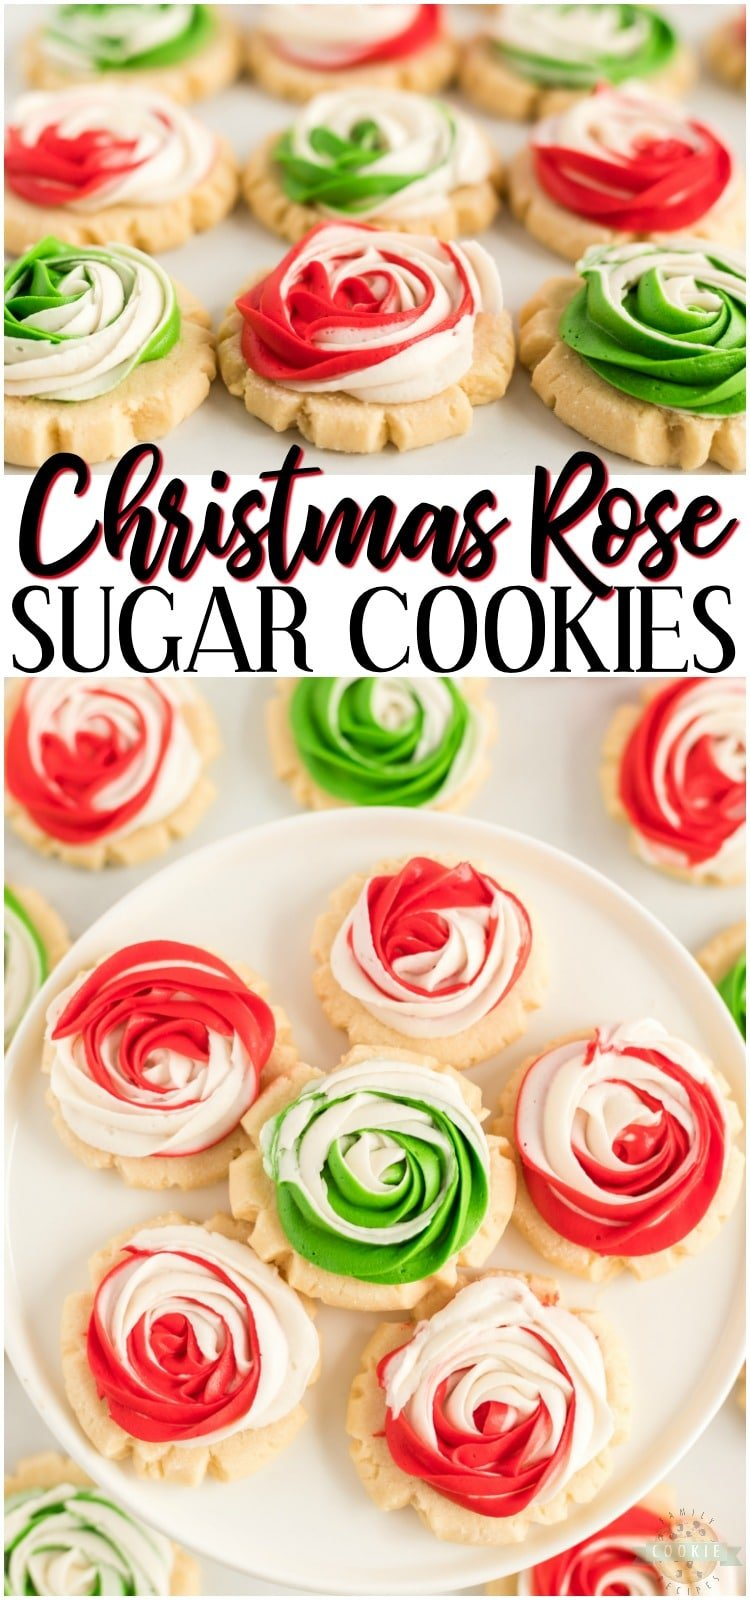 1632465835_293_FROSTED-ROSE-SUGAR-COOKIES